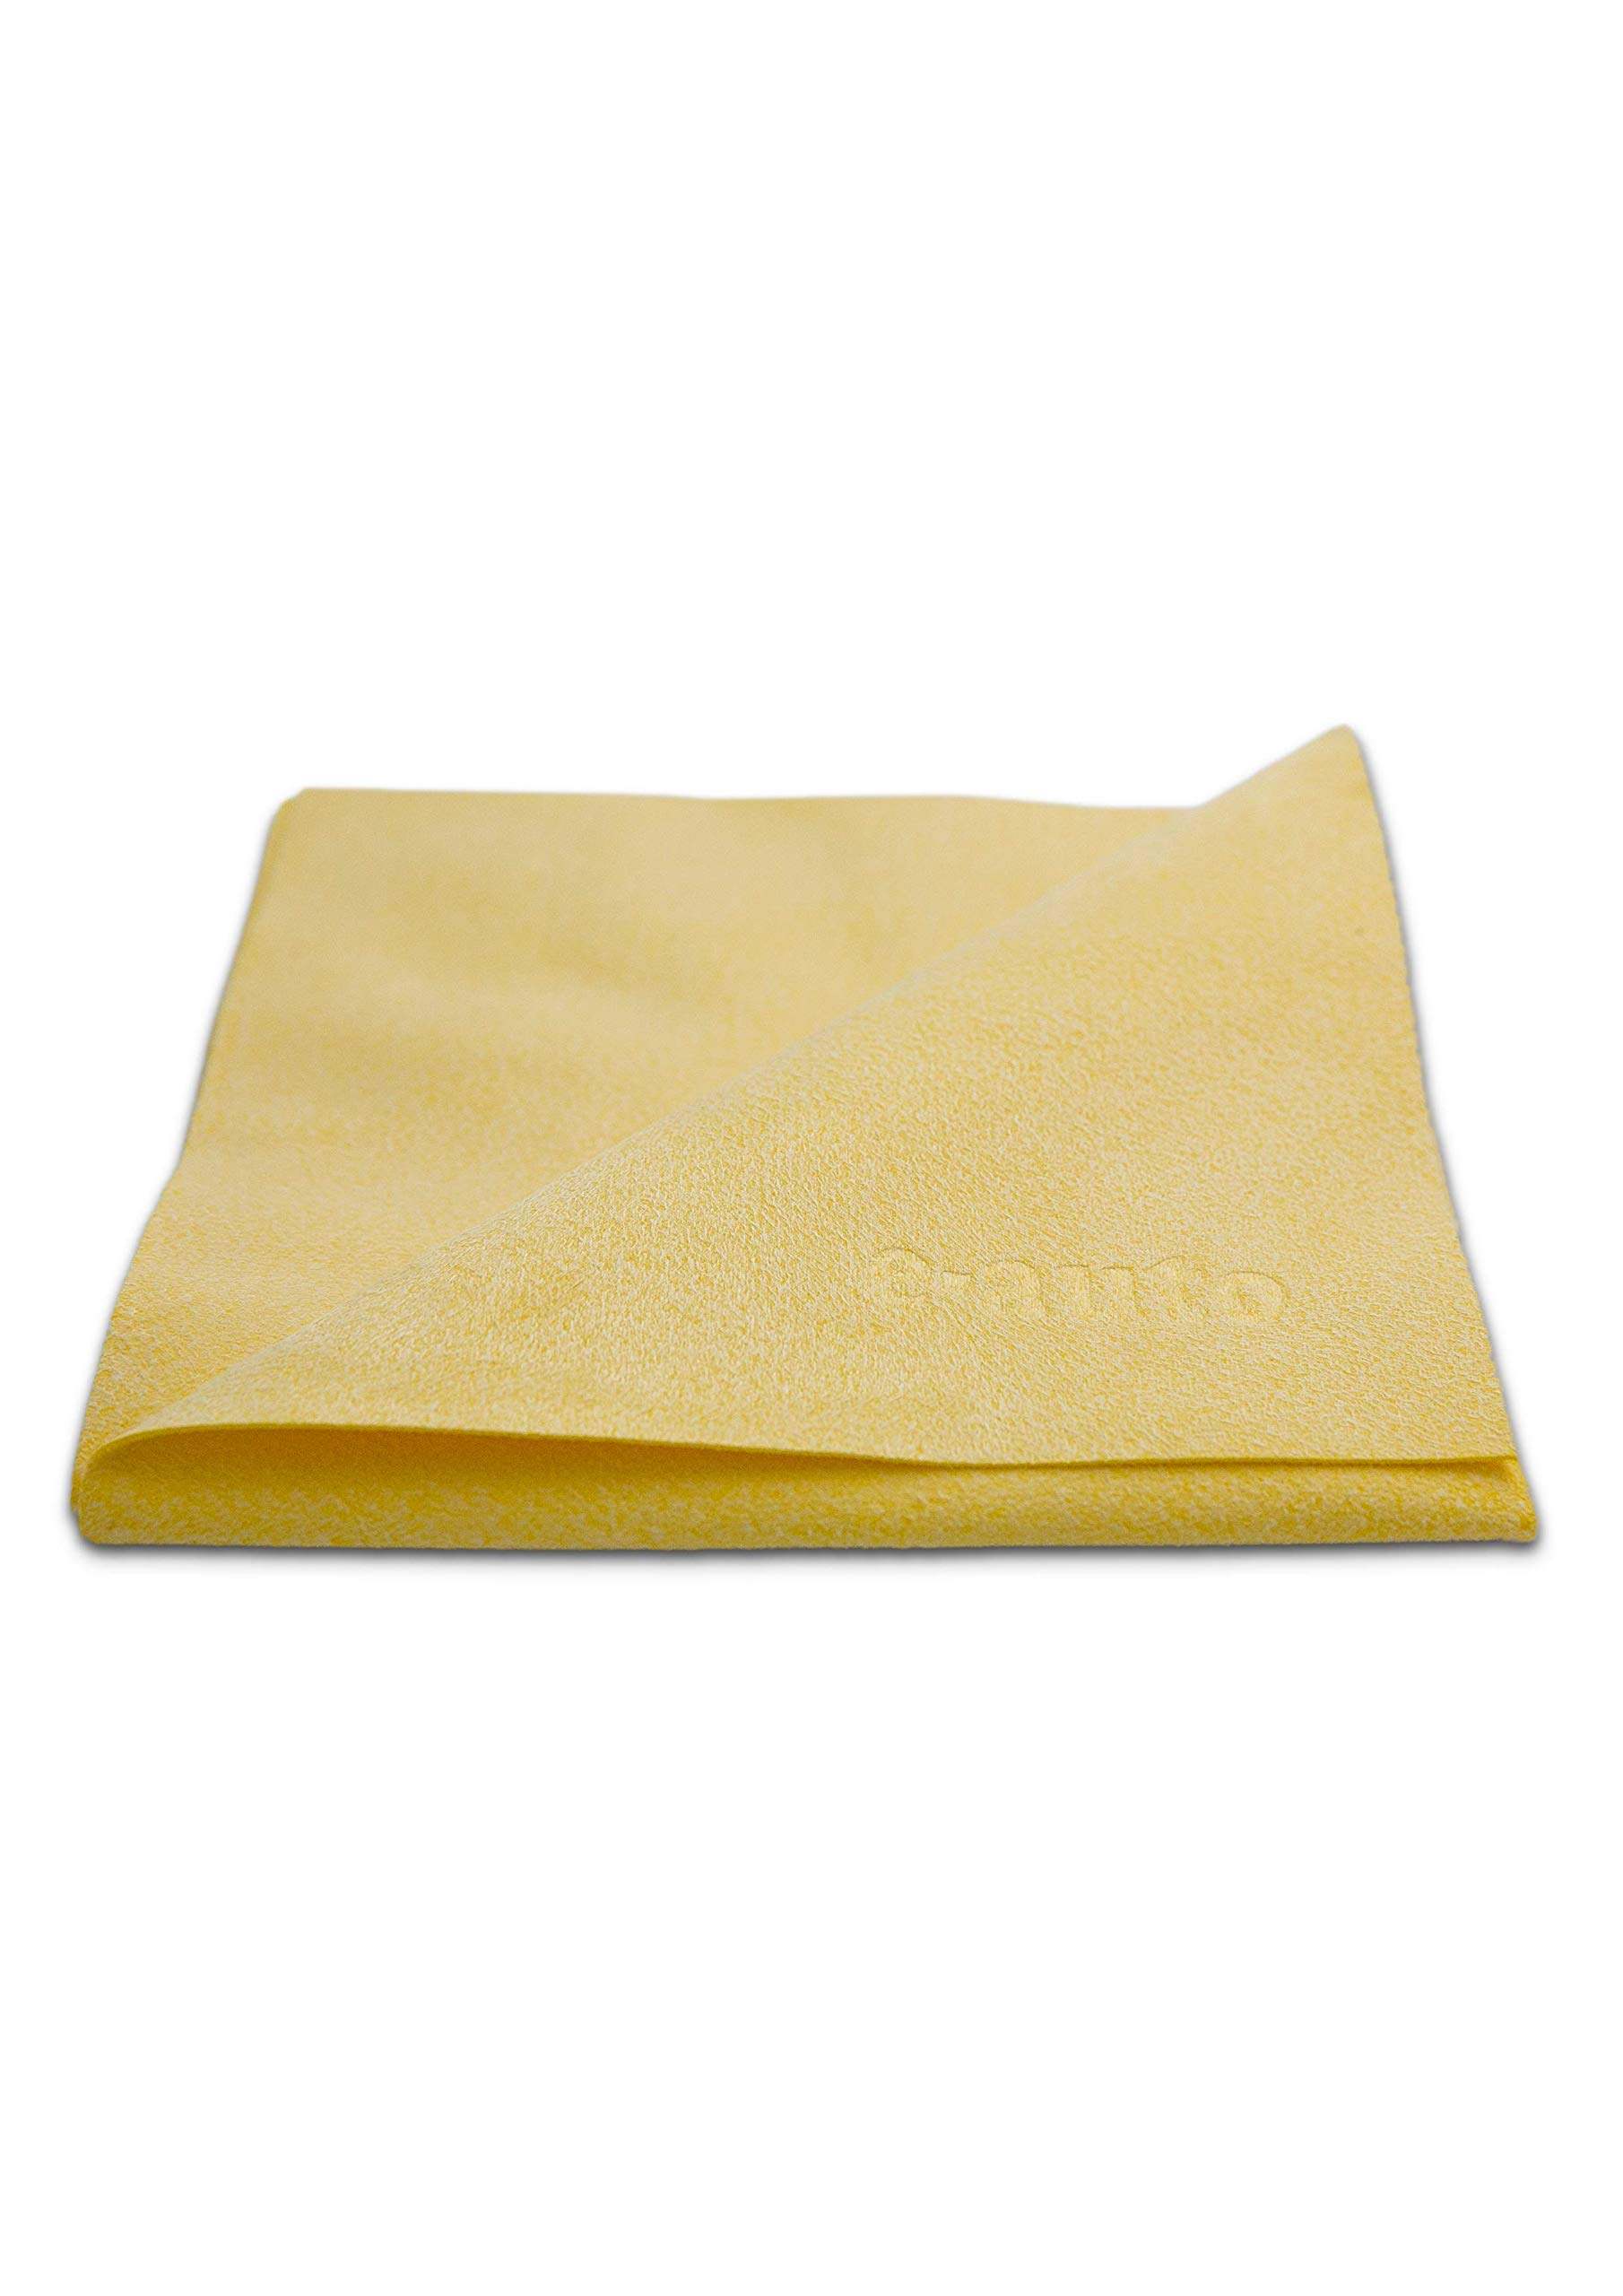 E-Cloth Car Dry & Shine Cloth - Super-Absorbent - Dries Streak-Free, Spot-Free, Residue-Free - Just Add Water